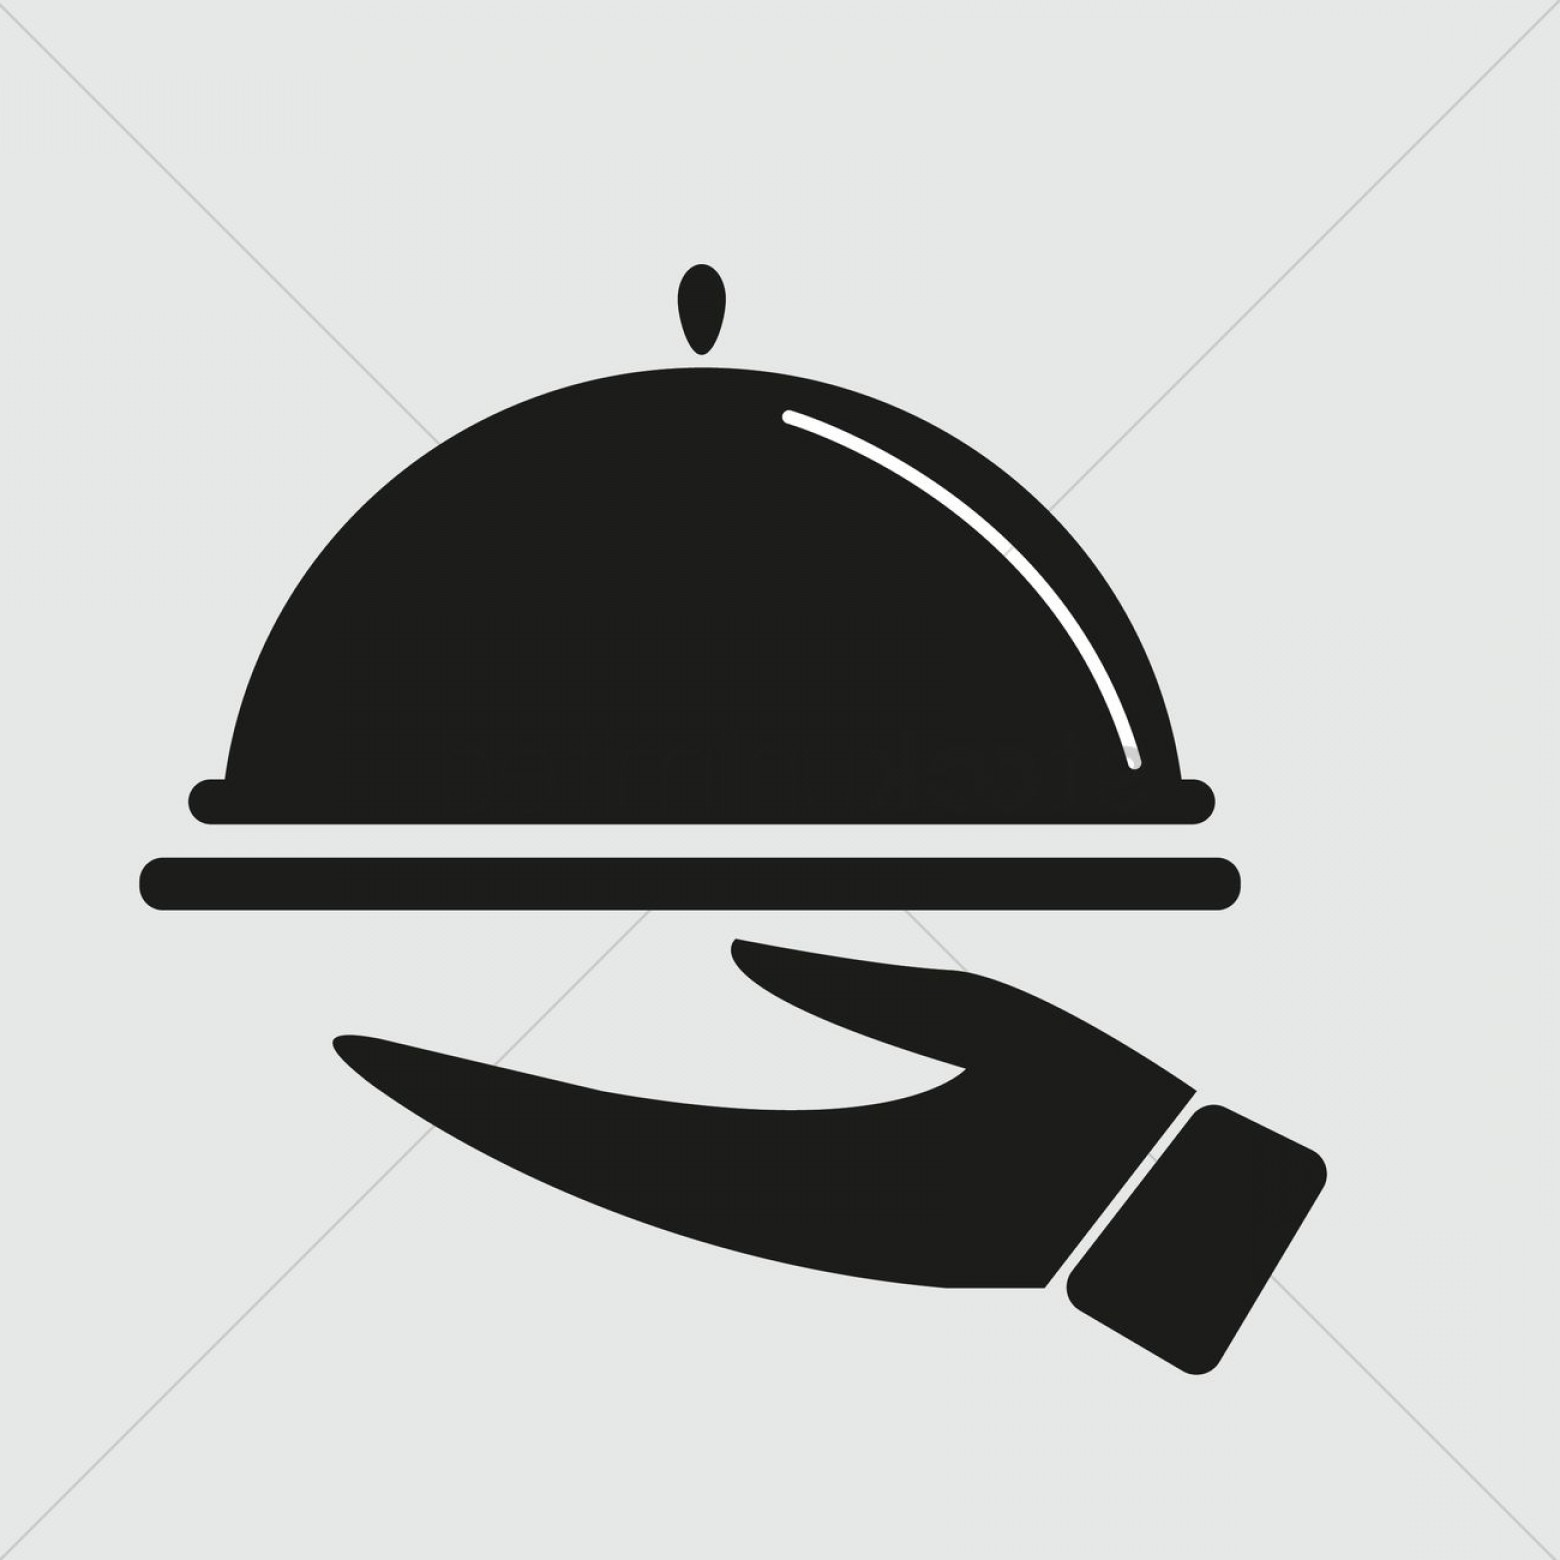 Serving Vector: Silhouette Of Serving Dish In Hand